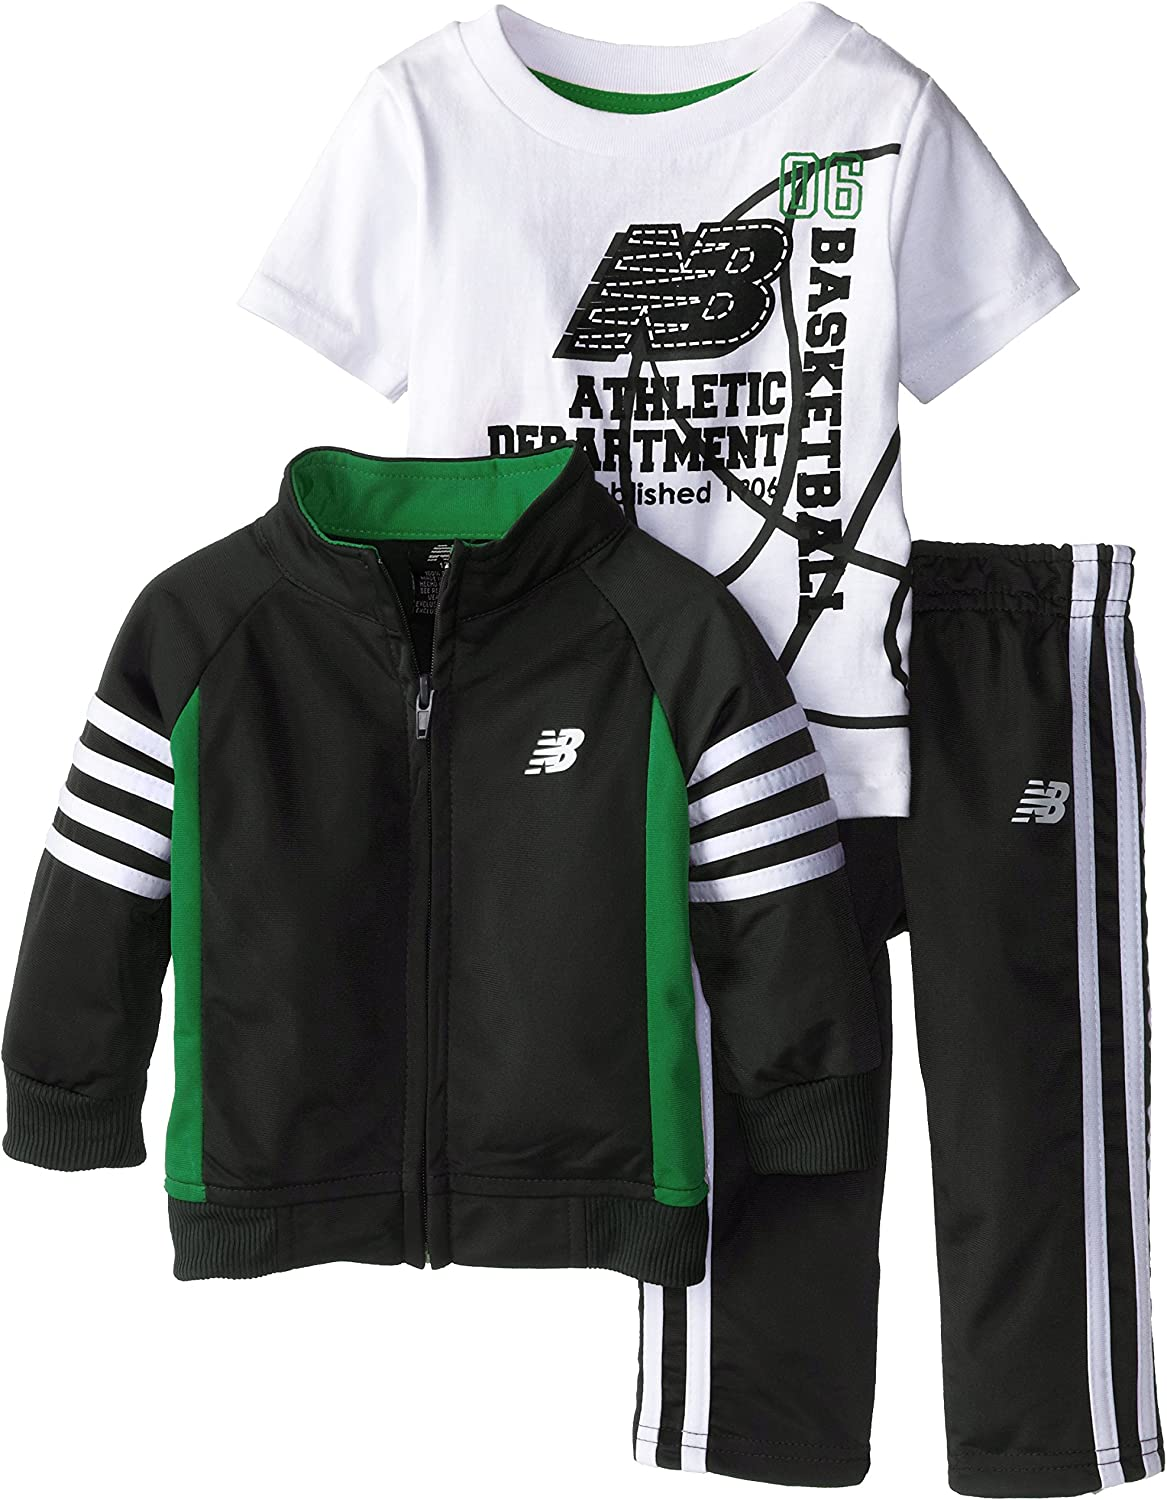 New Balance Baby Boys' Athletic Department Tricot Jacket and Pant